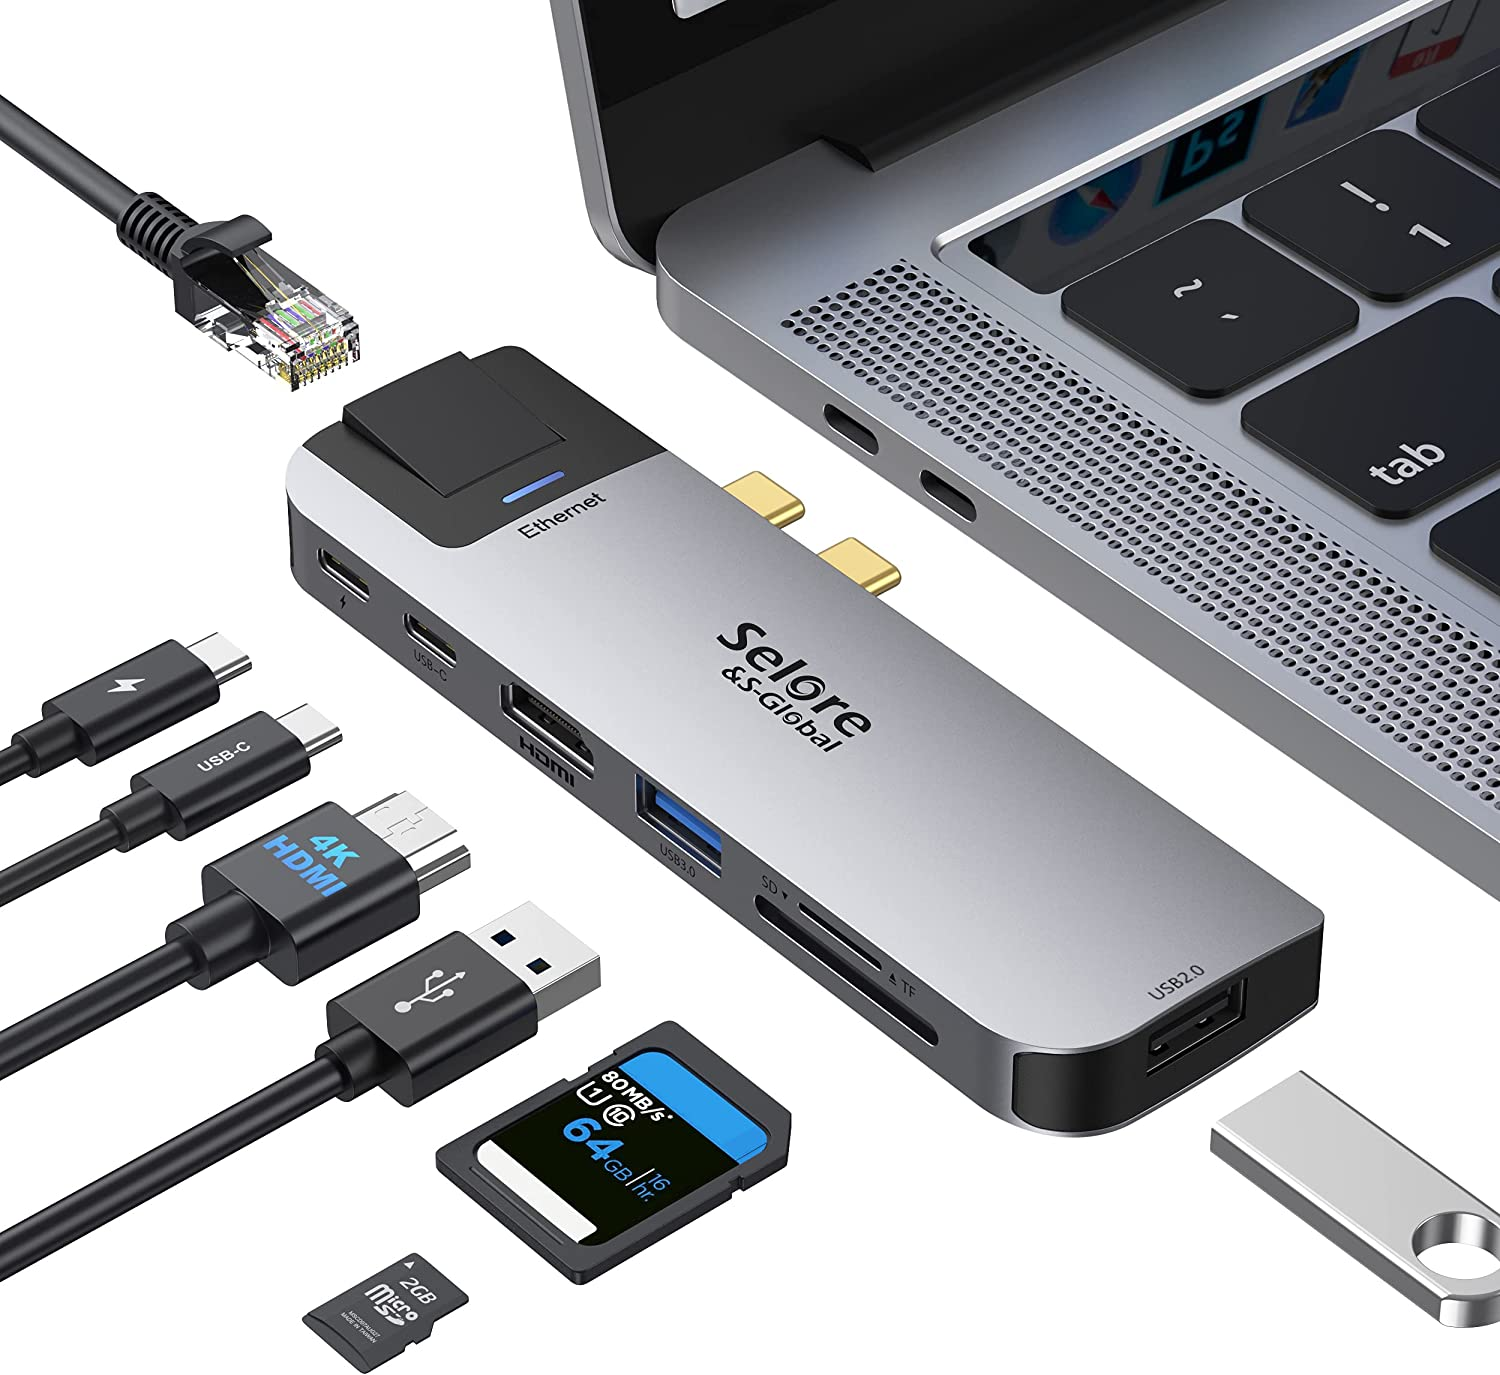 MacBook Pro USB C Adapter, USB C to HDMI Adapter for MacBook Pro/Air with 4K HDMI Port, Gigabit ethernet, 2 USB Port, TF/SD Card Reader, USB-C 100W PD and Thunderbolt 3 8-in-1 MacBook Docking Station